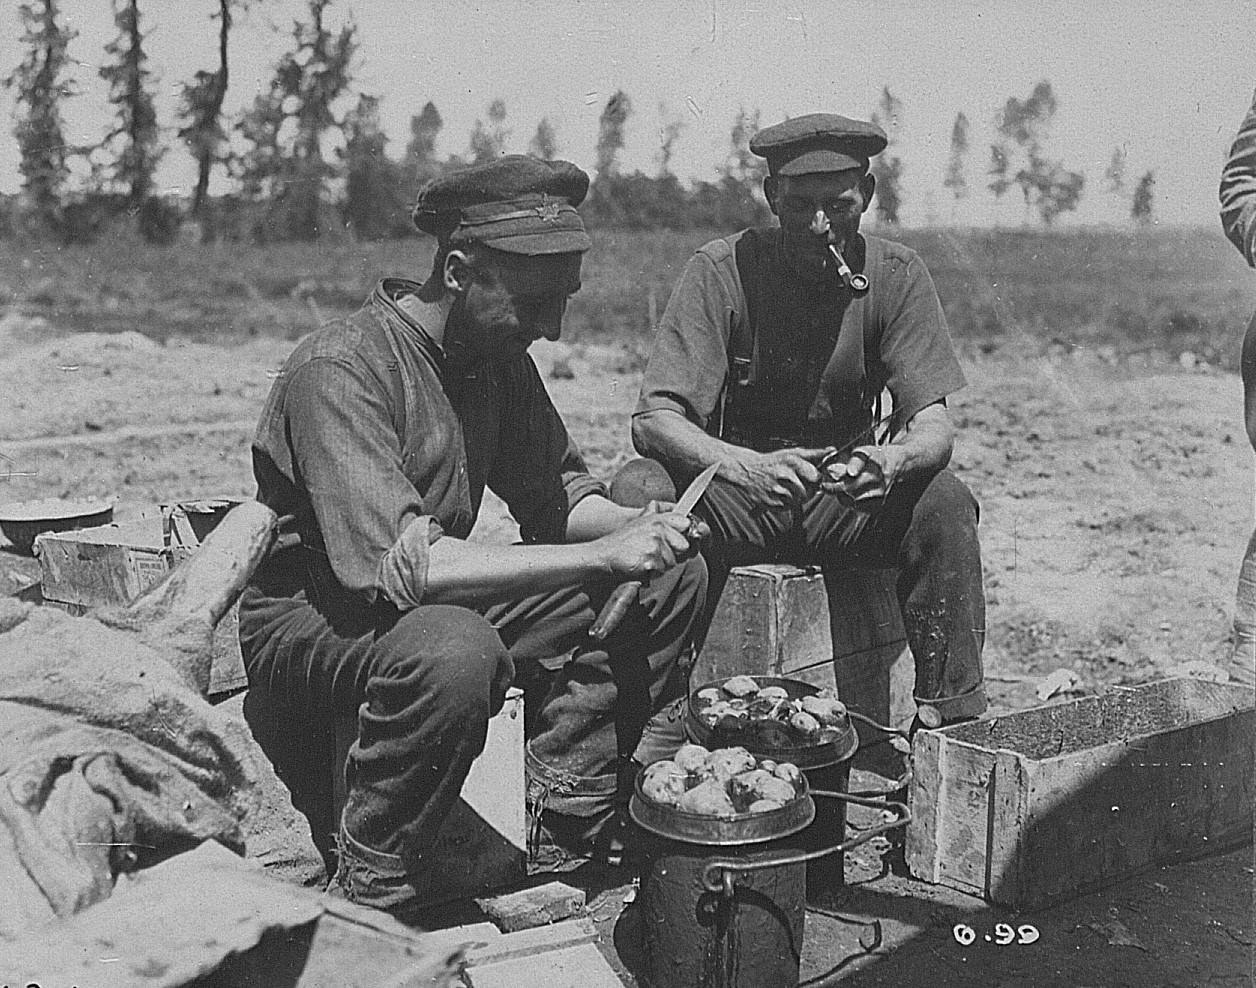 Canadian soldiers peeling potatoes - Canadian Official War Photographs